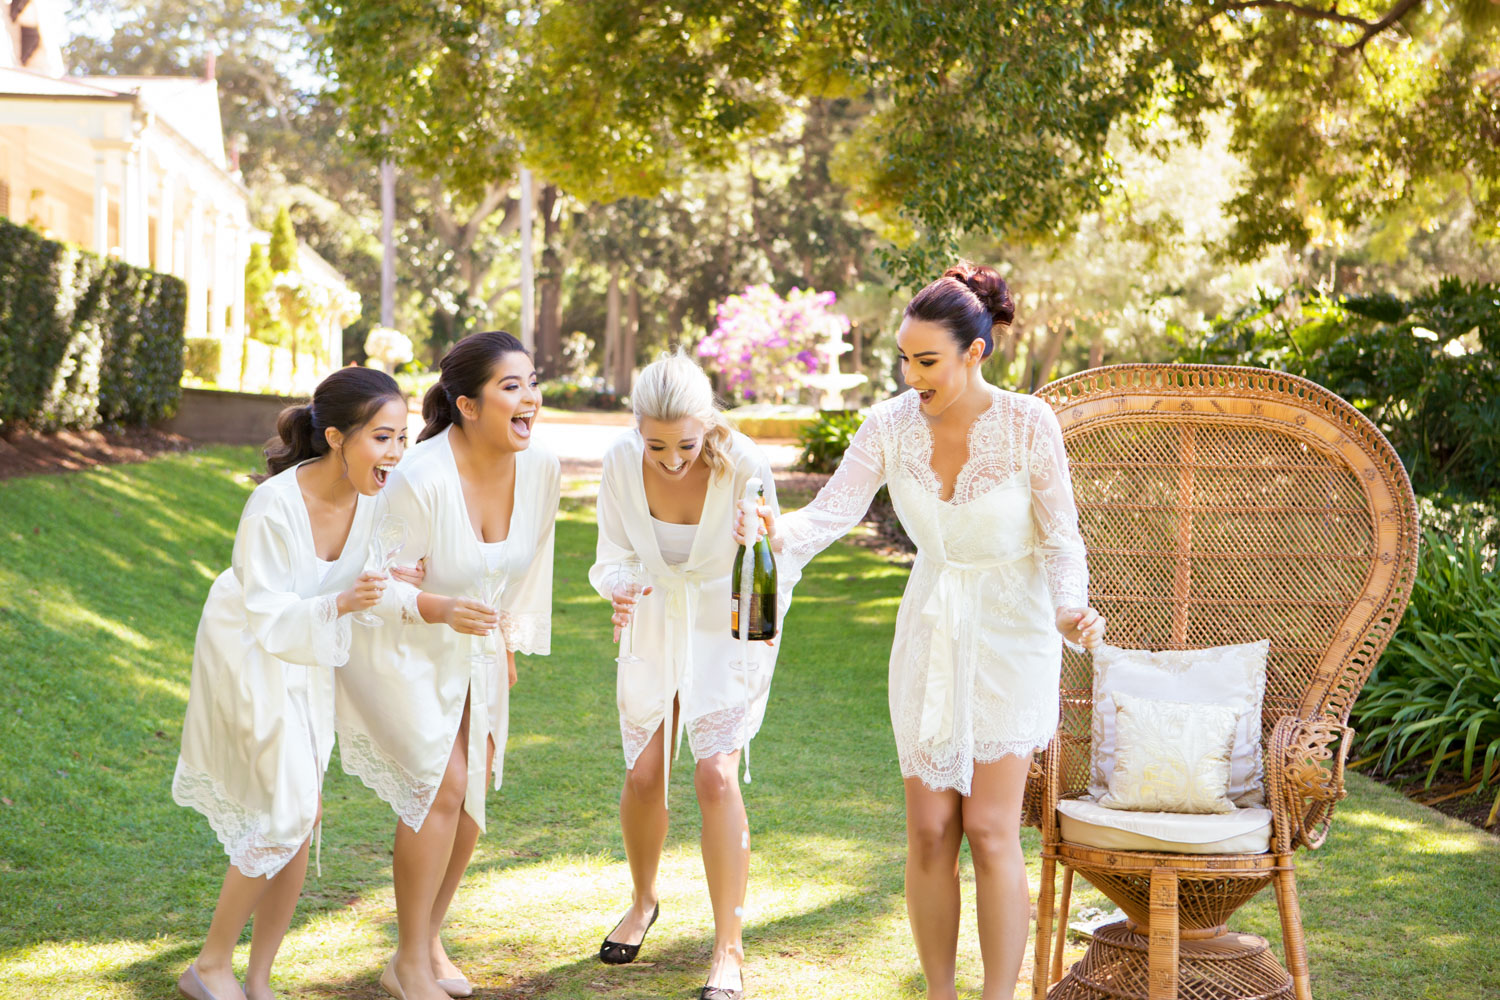 wedding-0407-bridesmaids-dressinggown-champagne-laughing-queensland.jpg